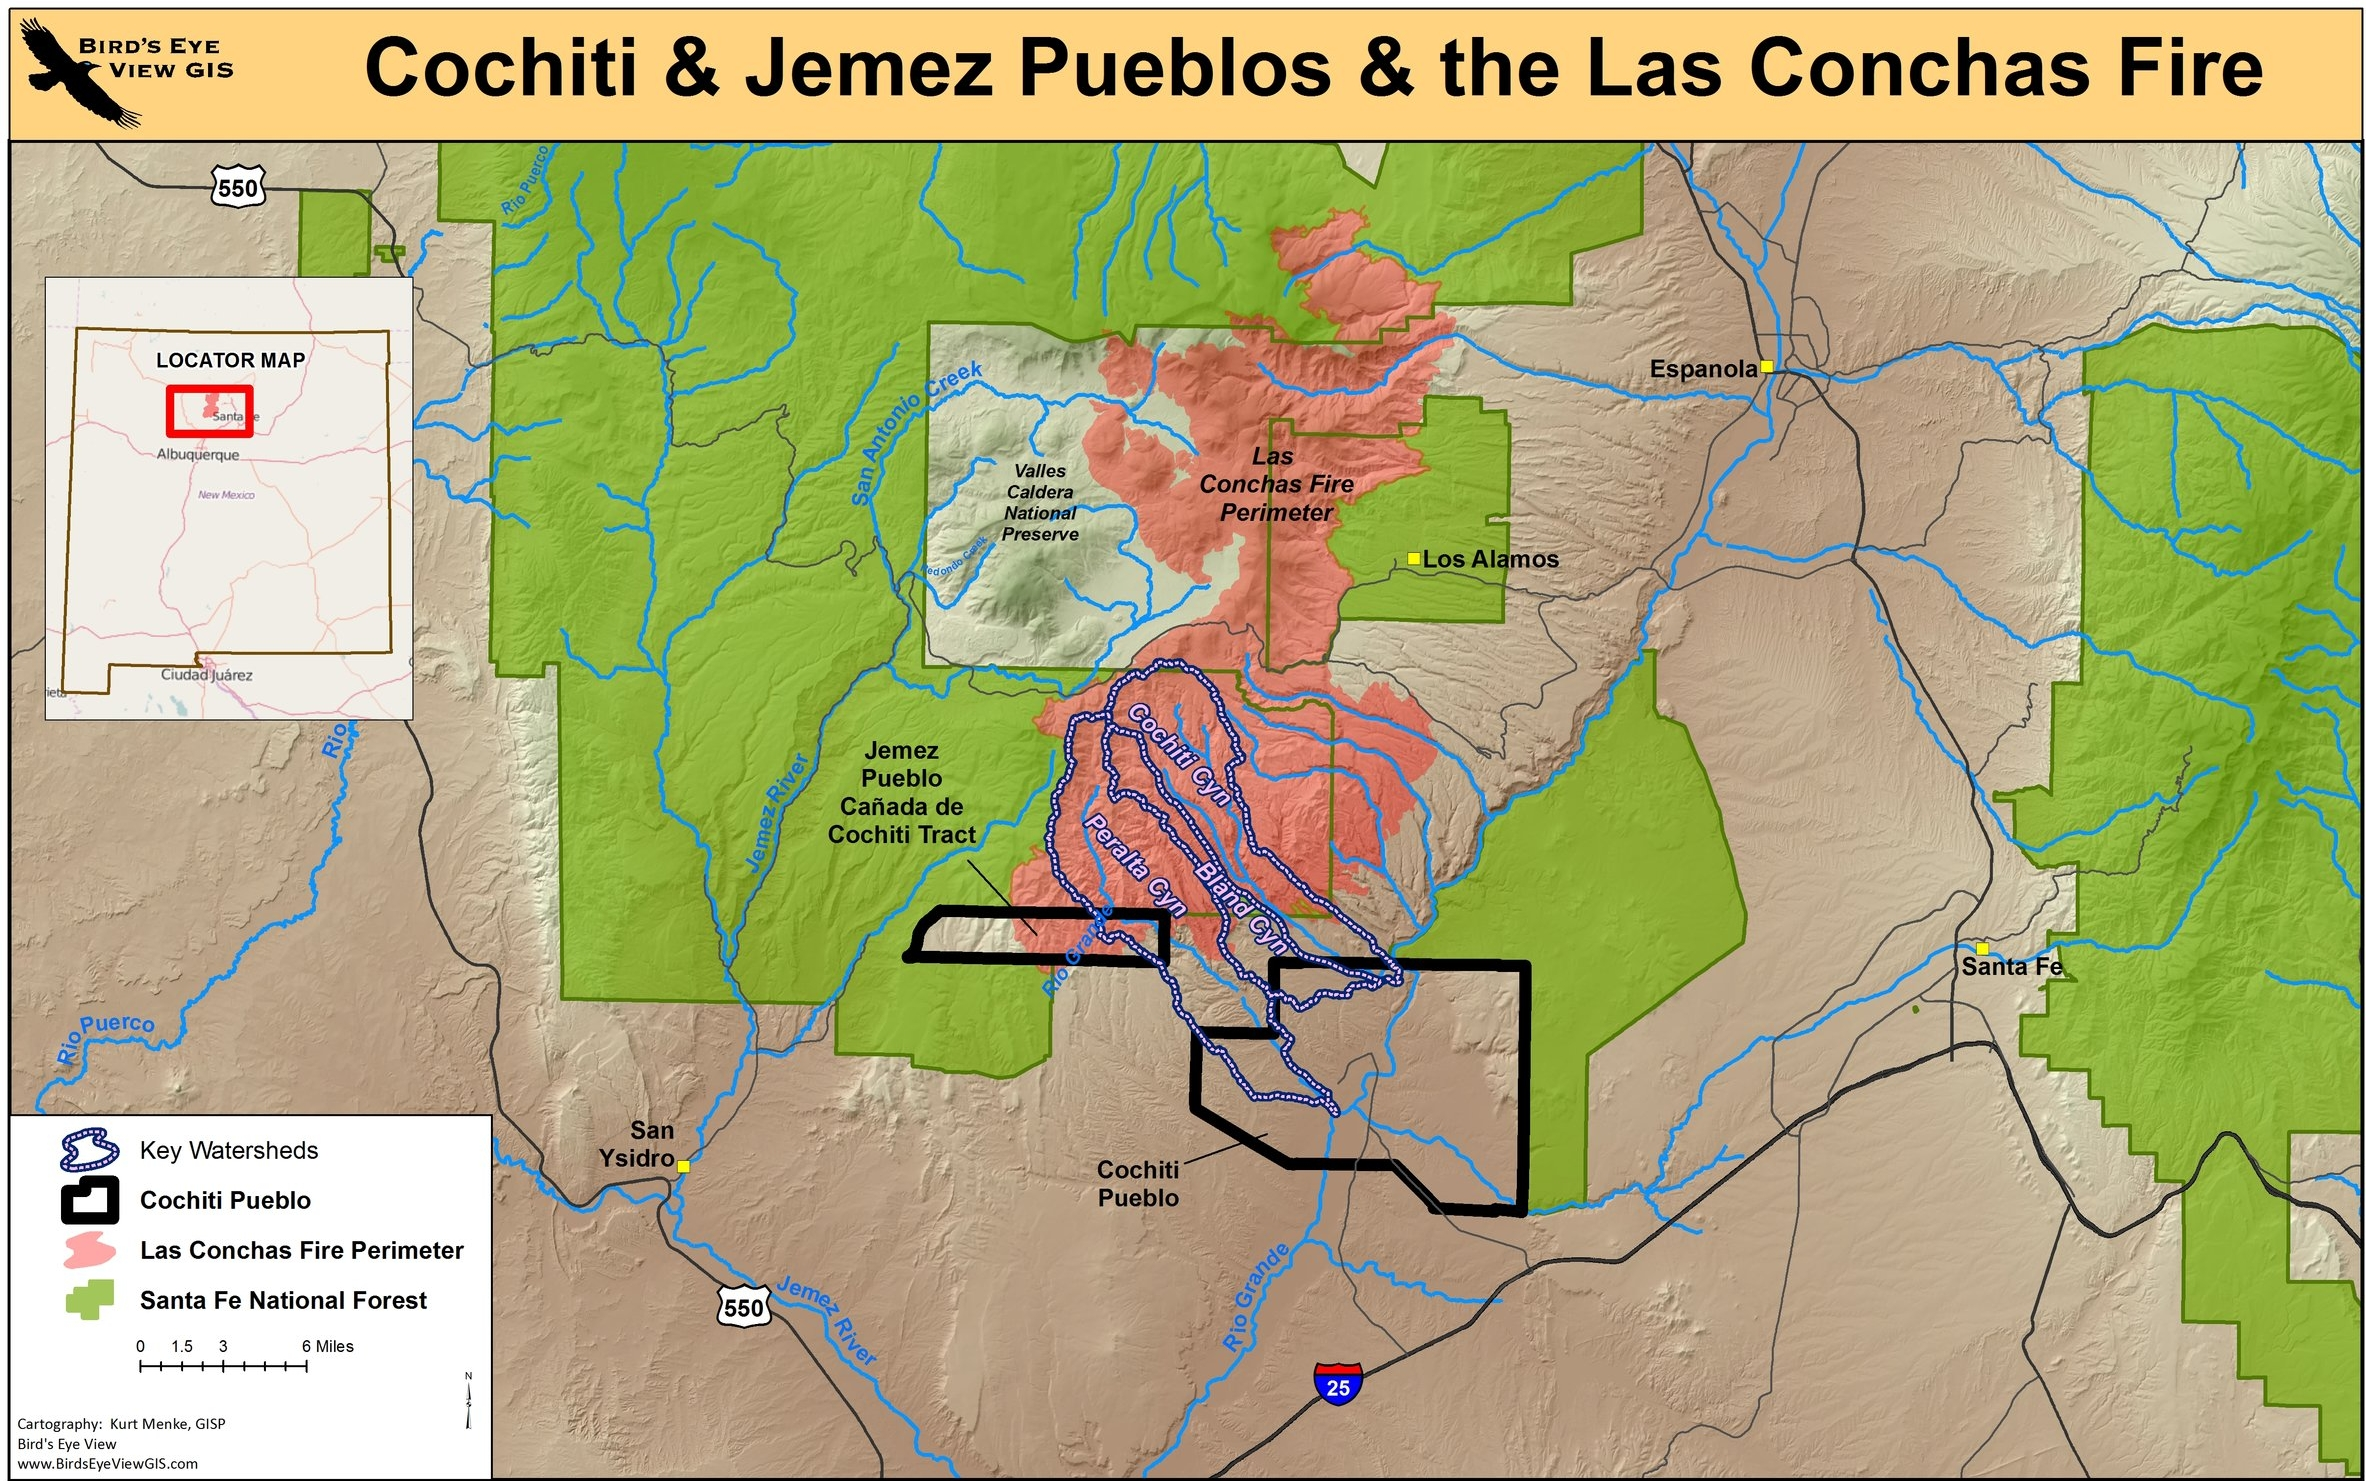 Cochiti_Jemez_Pueblos_and_LasConchasFire.jpg